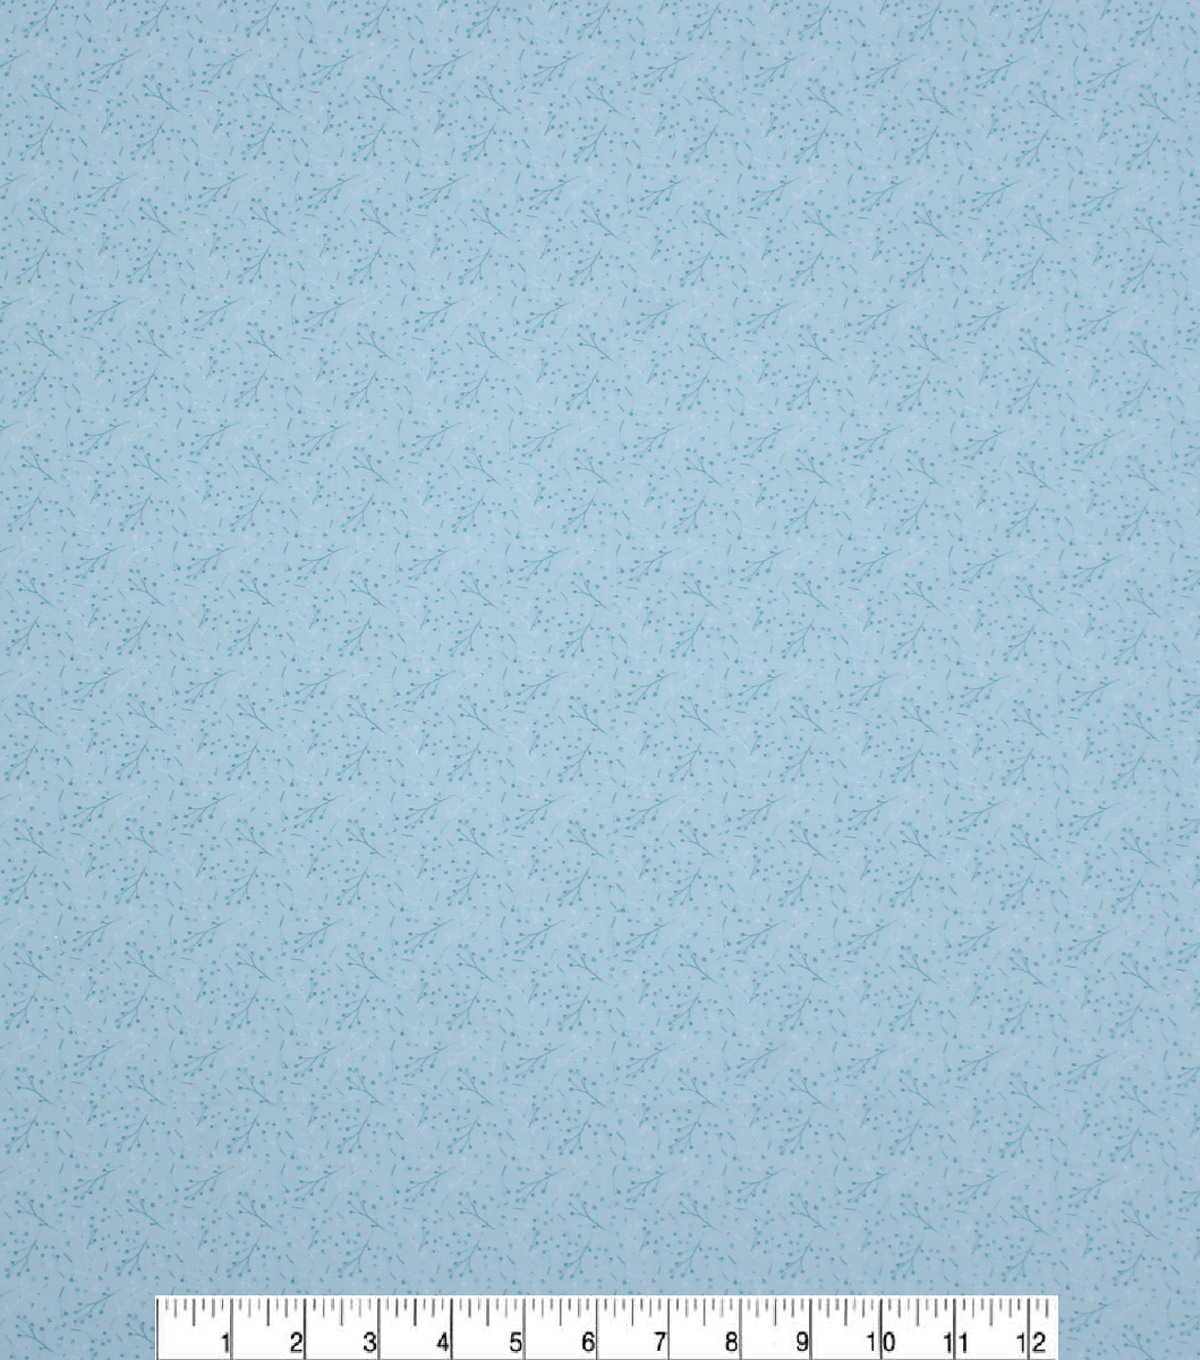 Keepsake Calico Cotton Fabric-Aqua Berries